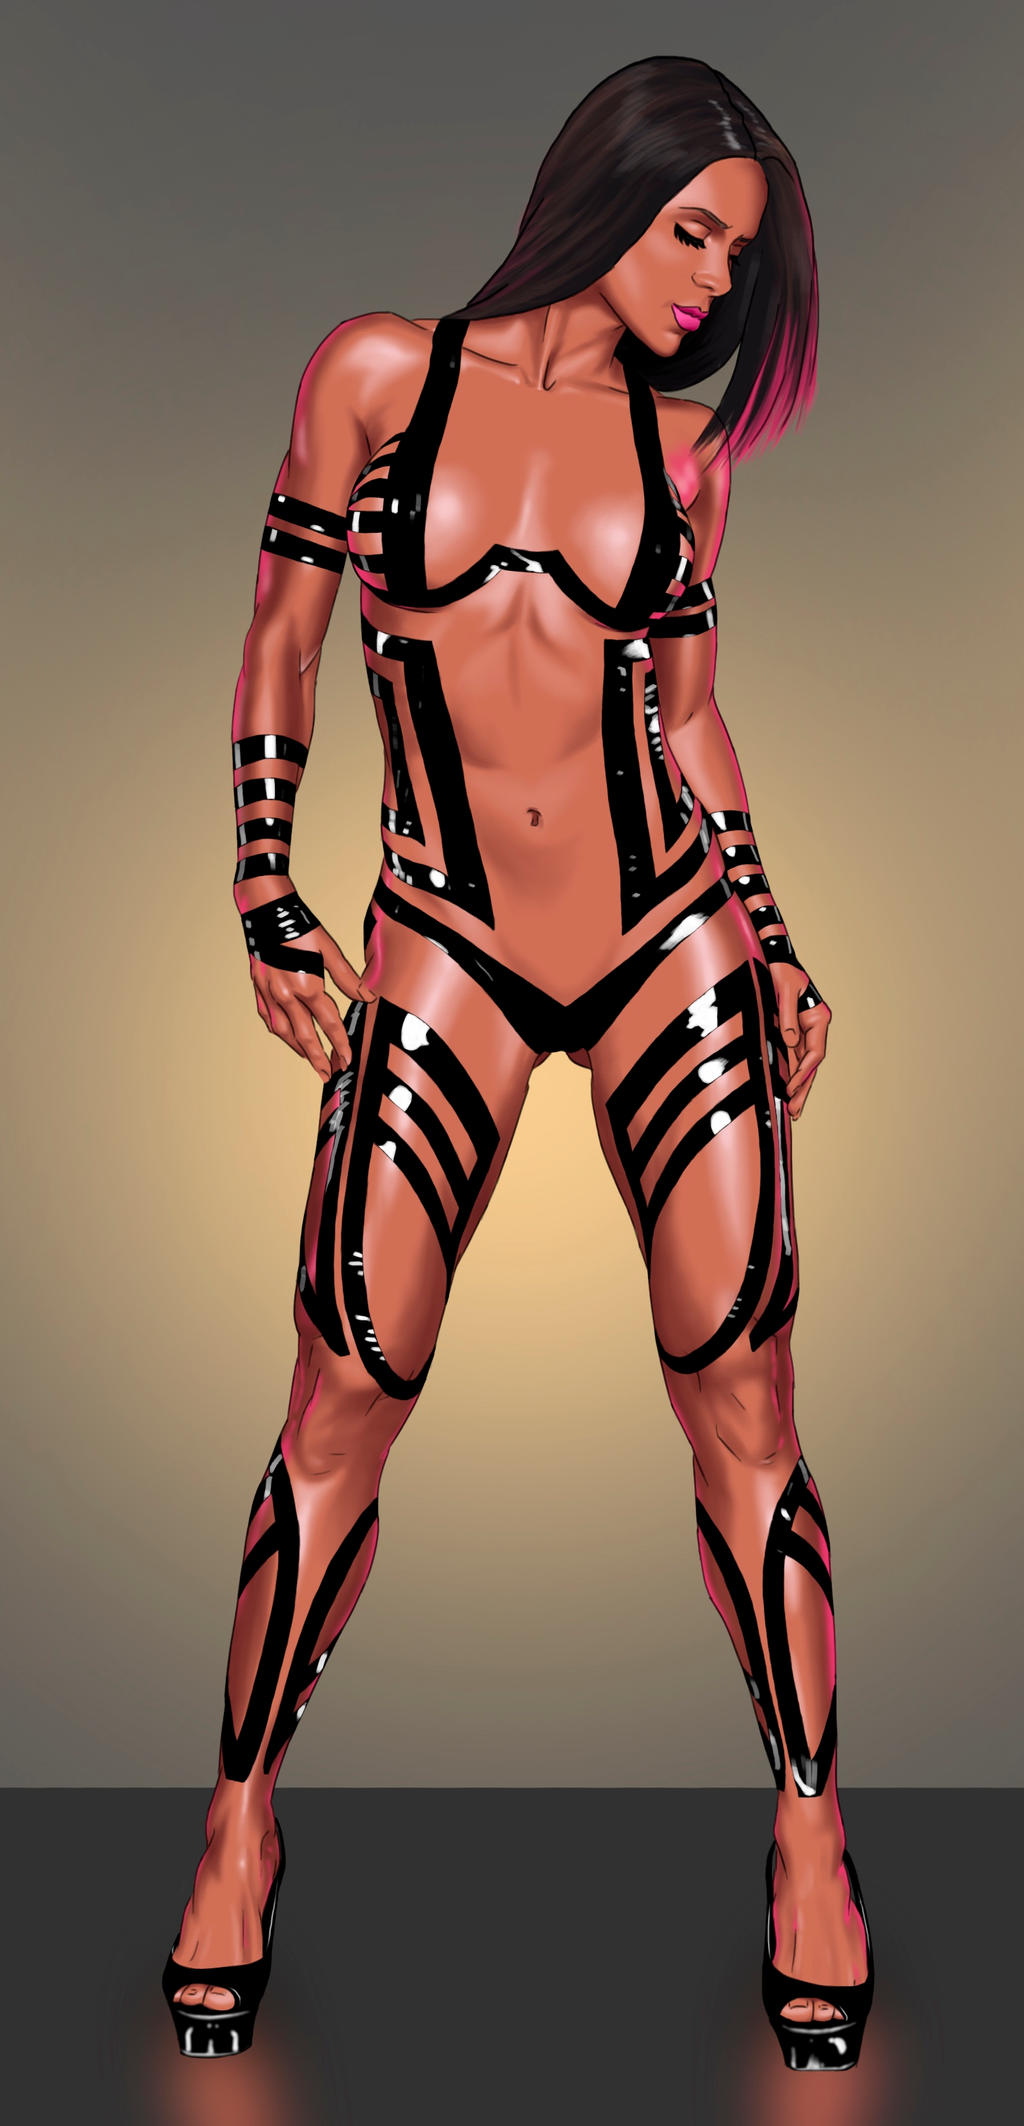 Black Tape Project >> The Black Tape Project Michelle Lewin Front 1 3 By